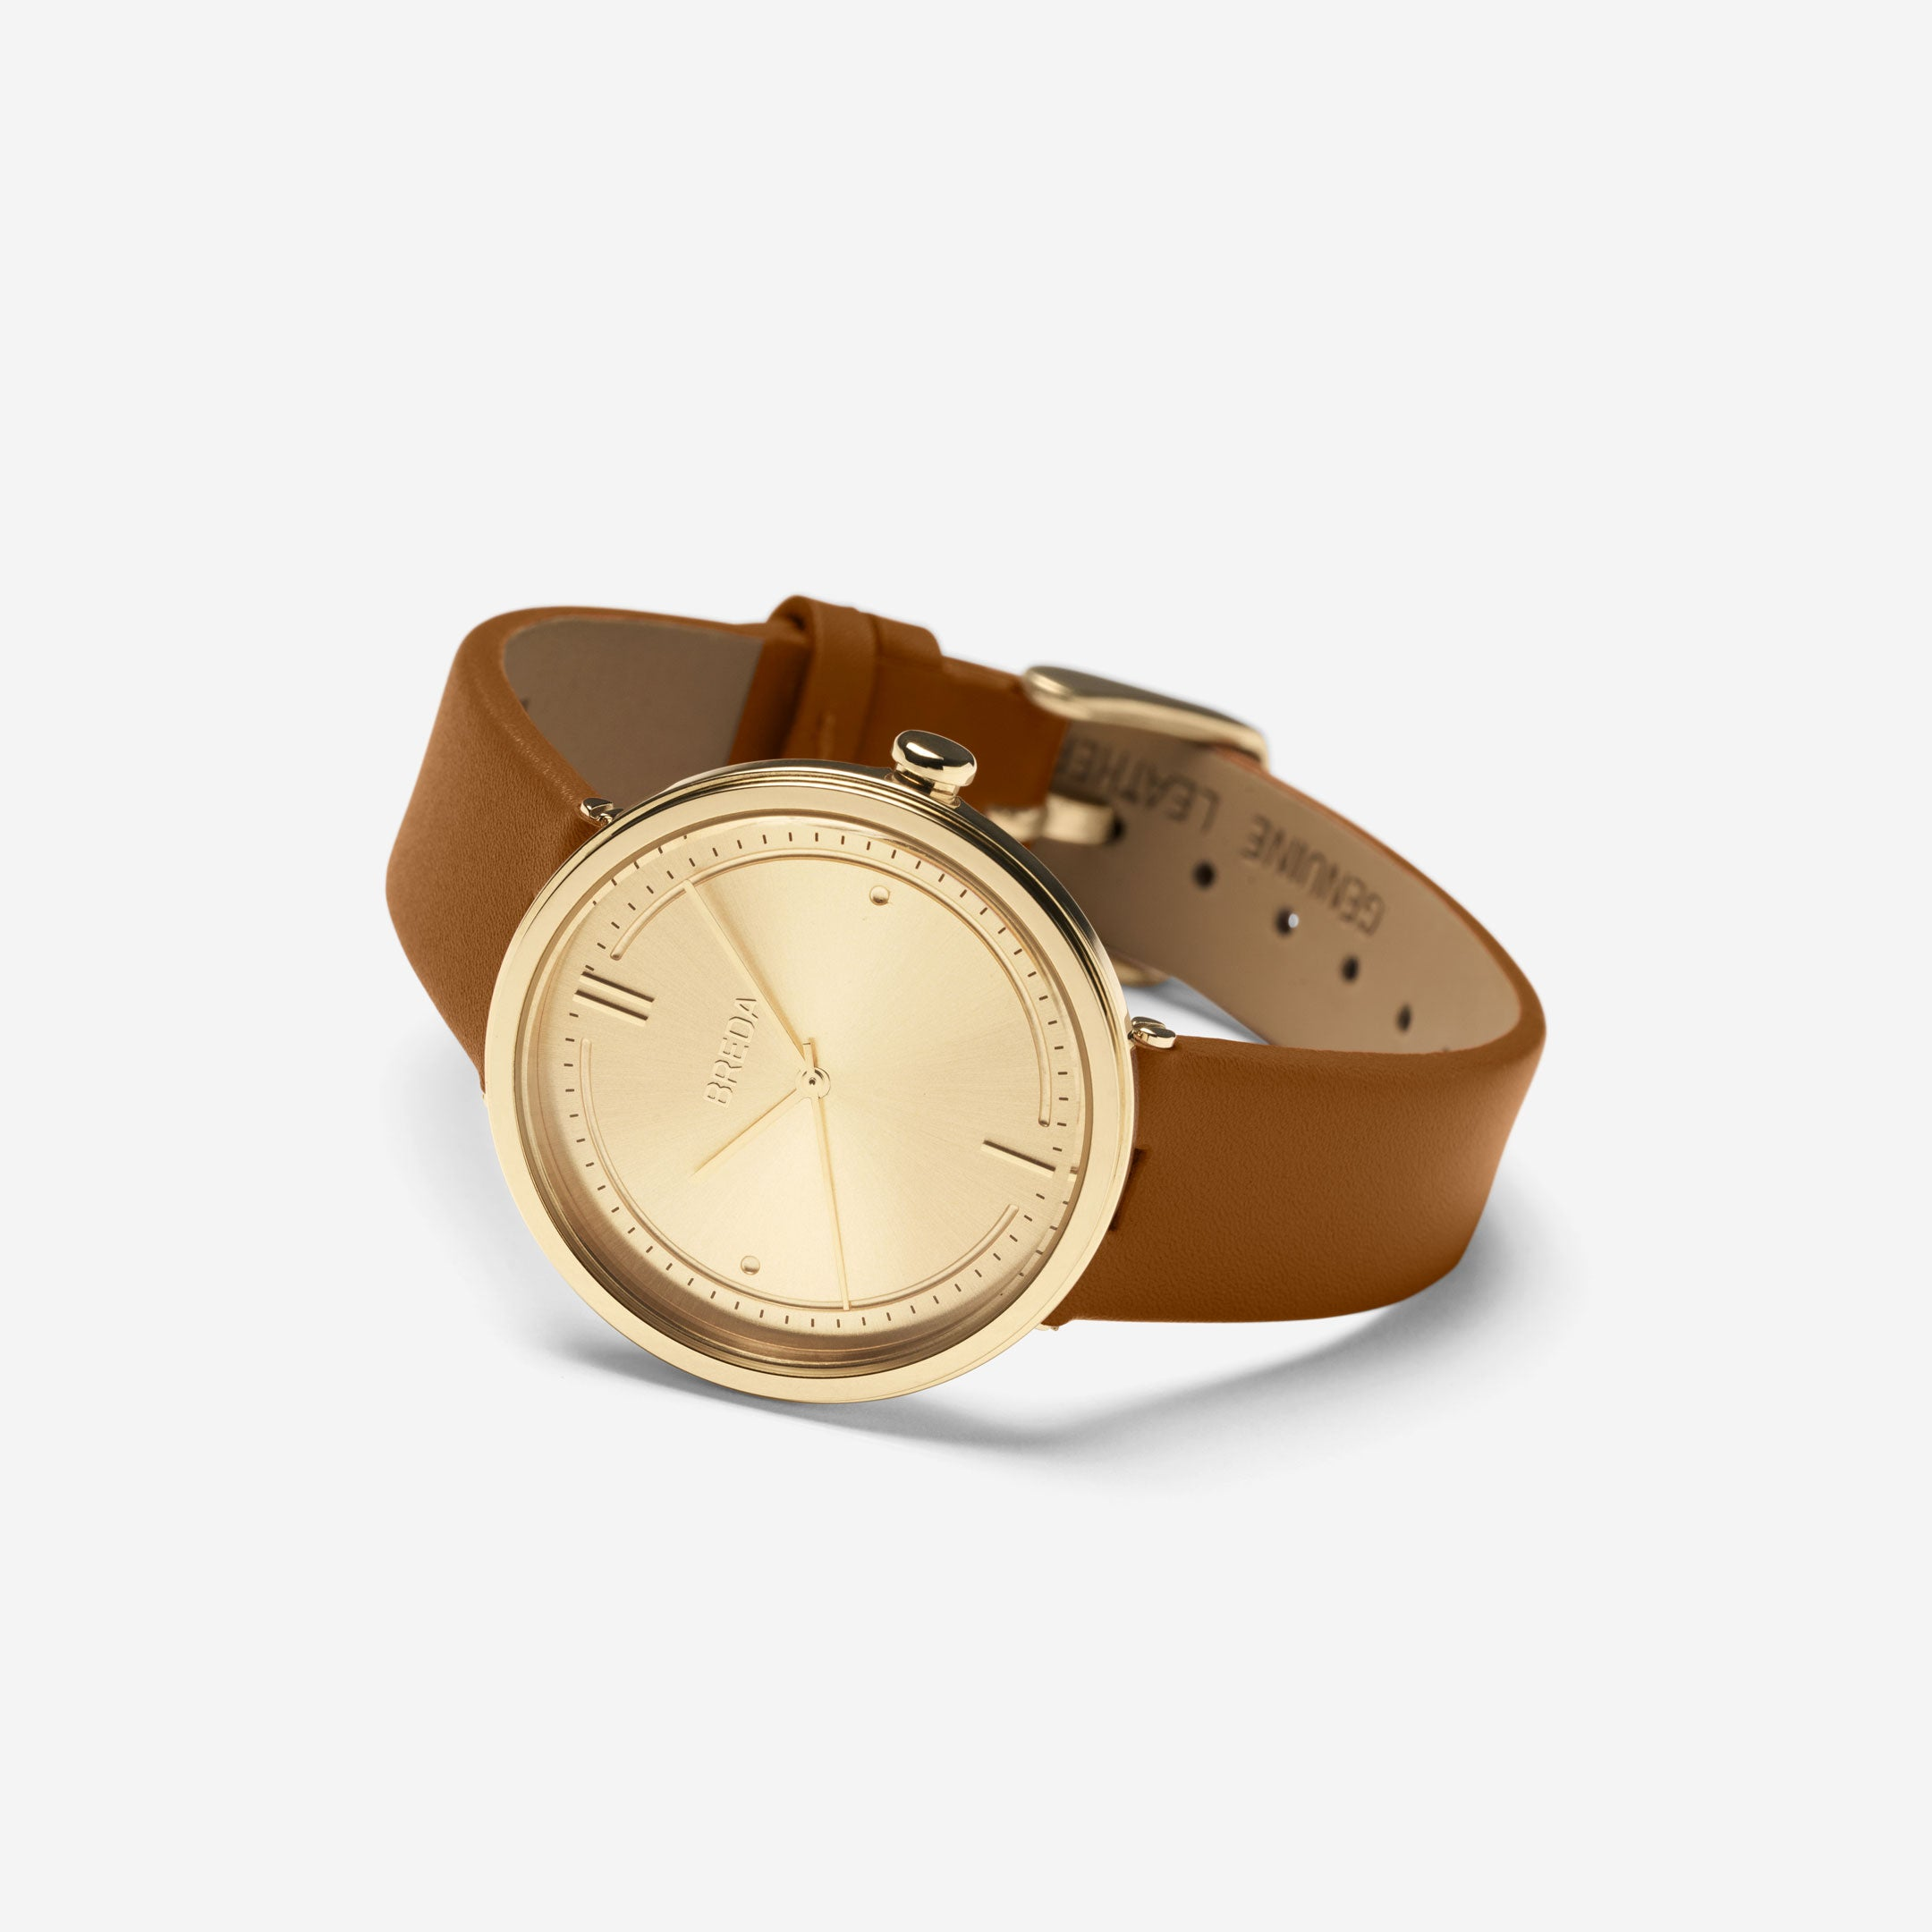 //cdn.shopify.com/s/files/1/0879/6650/products/breda-agnes-1733e-gold-brown-leather-watch-angle_1024x1024.jpg?v=1522789137